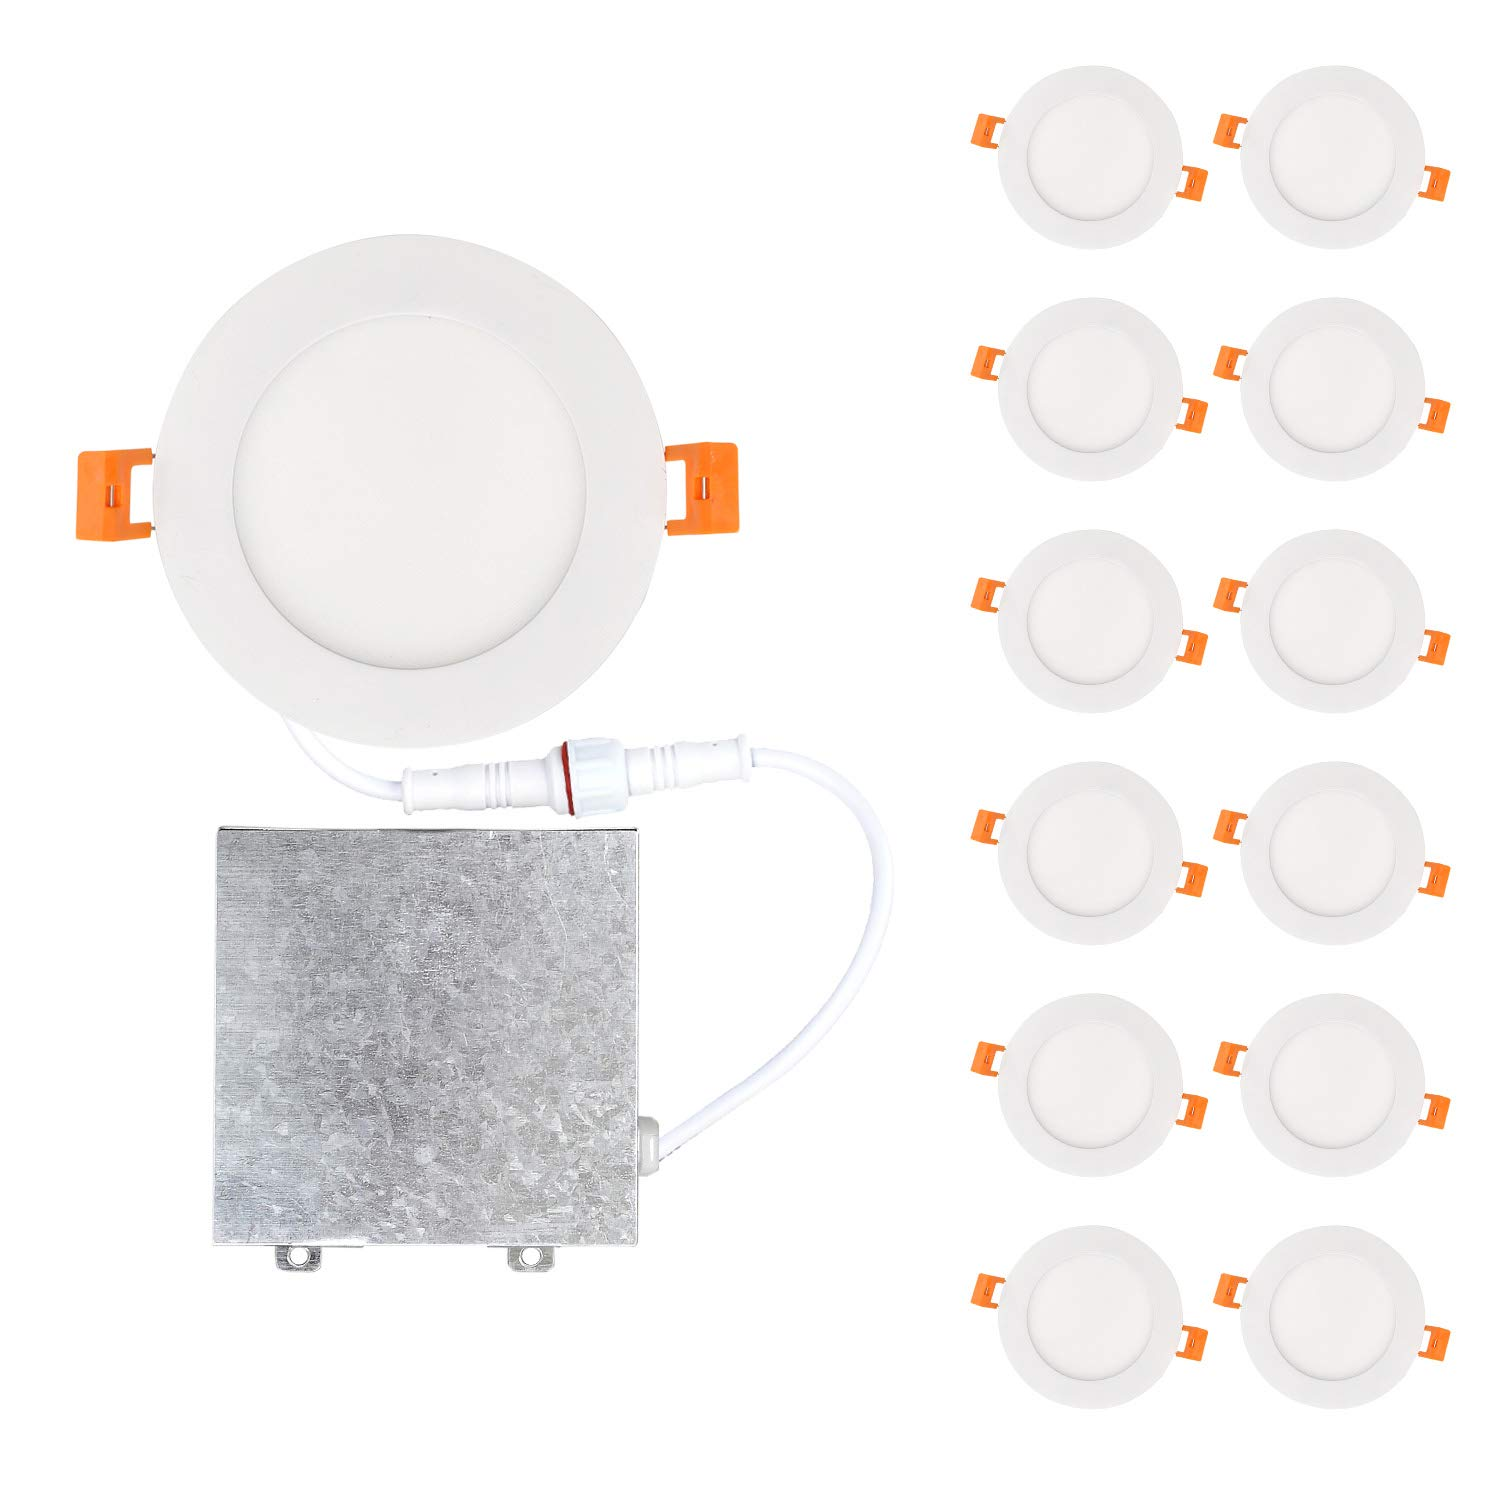 OSTWIN 4 inch 12W (60 Watt Repl.) IC Rated LED Recessed Low Profile Slim Round Panel Light with Junction Box, Dimmable, 4000K Bright Light 900 Lm. No Can Needed (12 Pack) ETL & Energy Star Listed